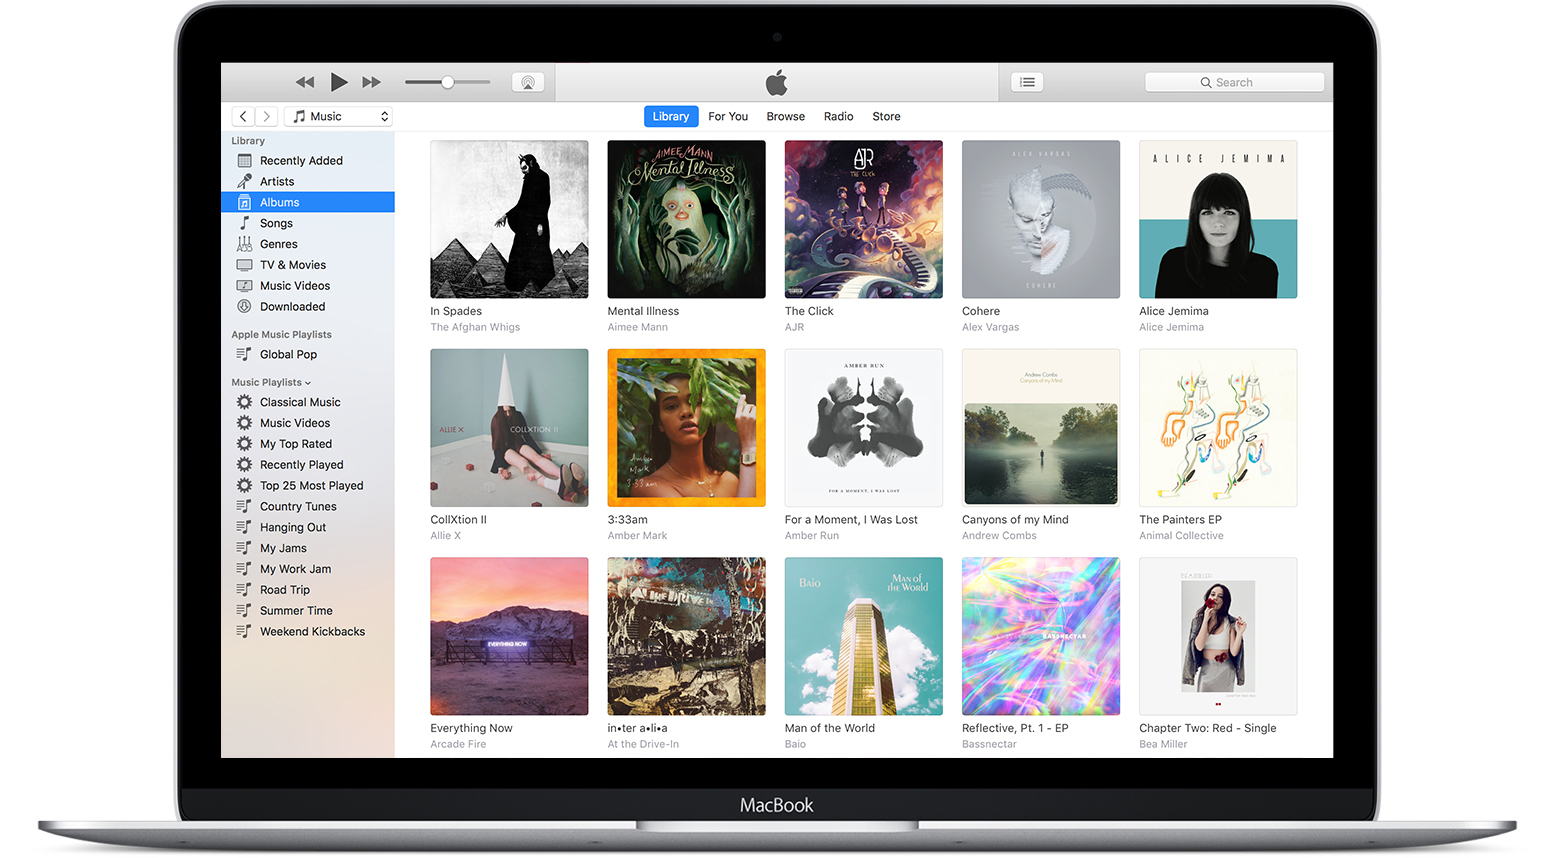 Apple releases iTunes 12 6 3 with built-in App Store and